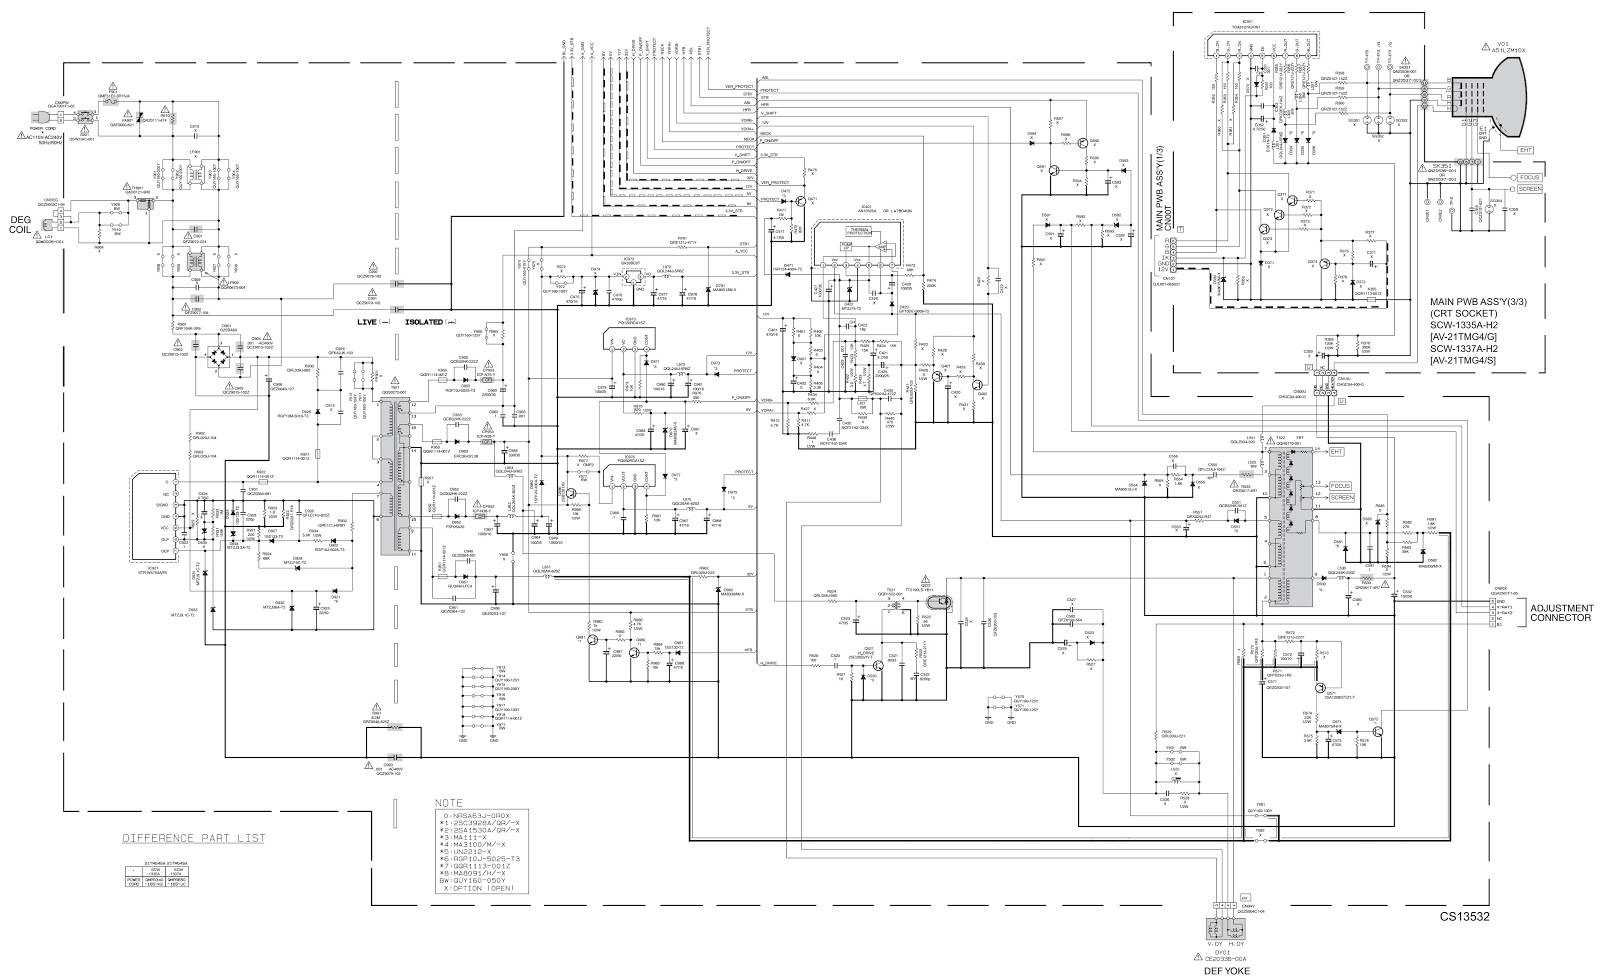 [DIAGRAM] Samsung Tv Circuit Board Diagram FULL Version HD